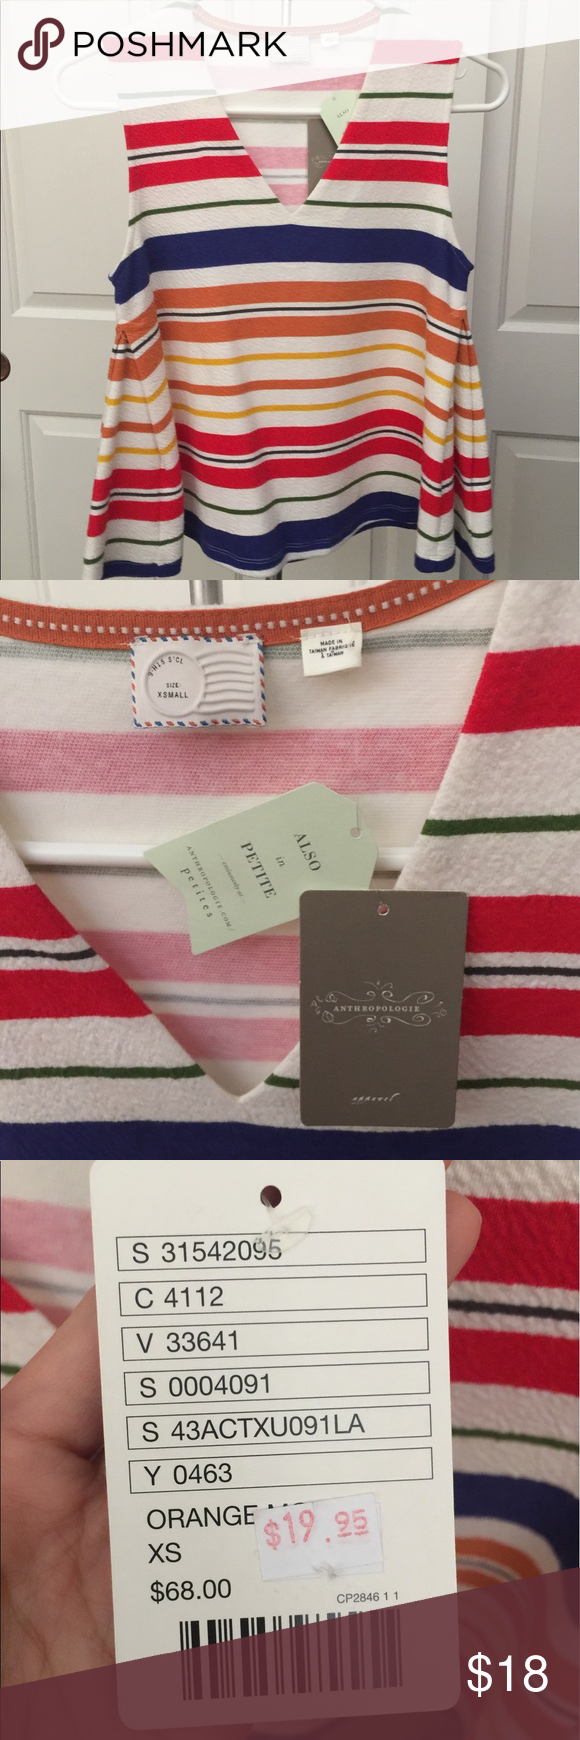 NWT Striped Anthropologie Top White tank with colorful stripes. BRAND NEW with tags. Size XS. Anthropologie Tops